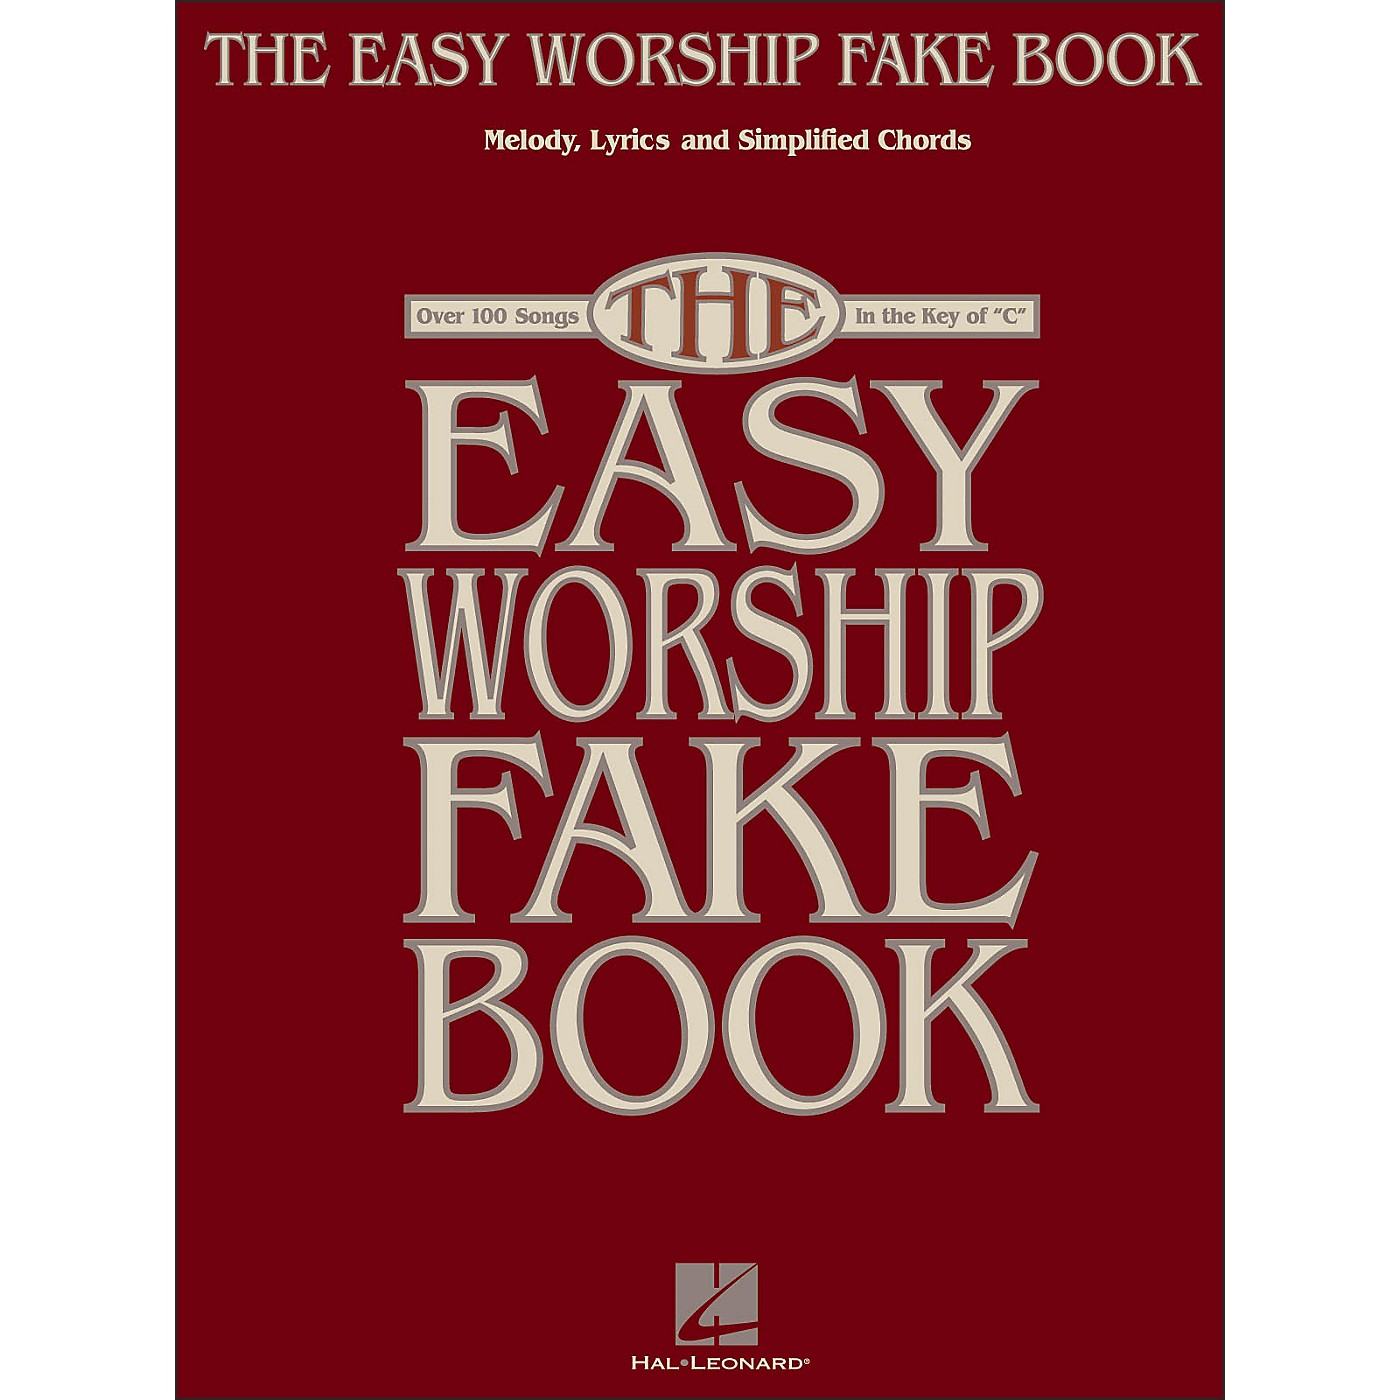 Hal Leonard The Easy Worship Fake Book - Over 100 Songs In Key Of C Melody, Lyrics, Simplify Chords thumbnail